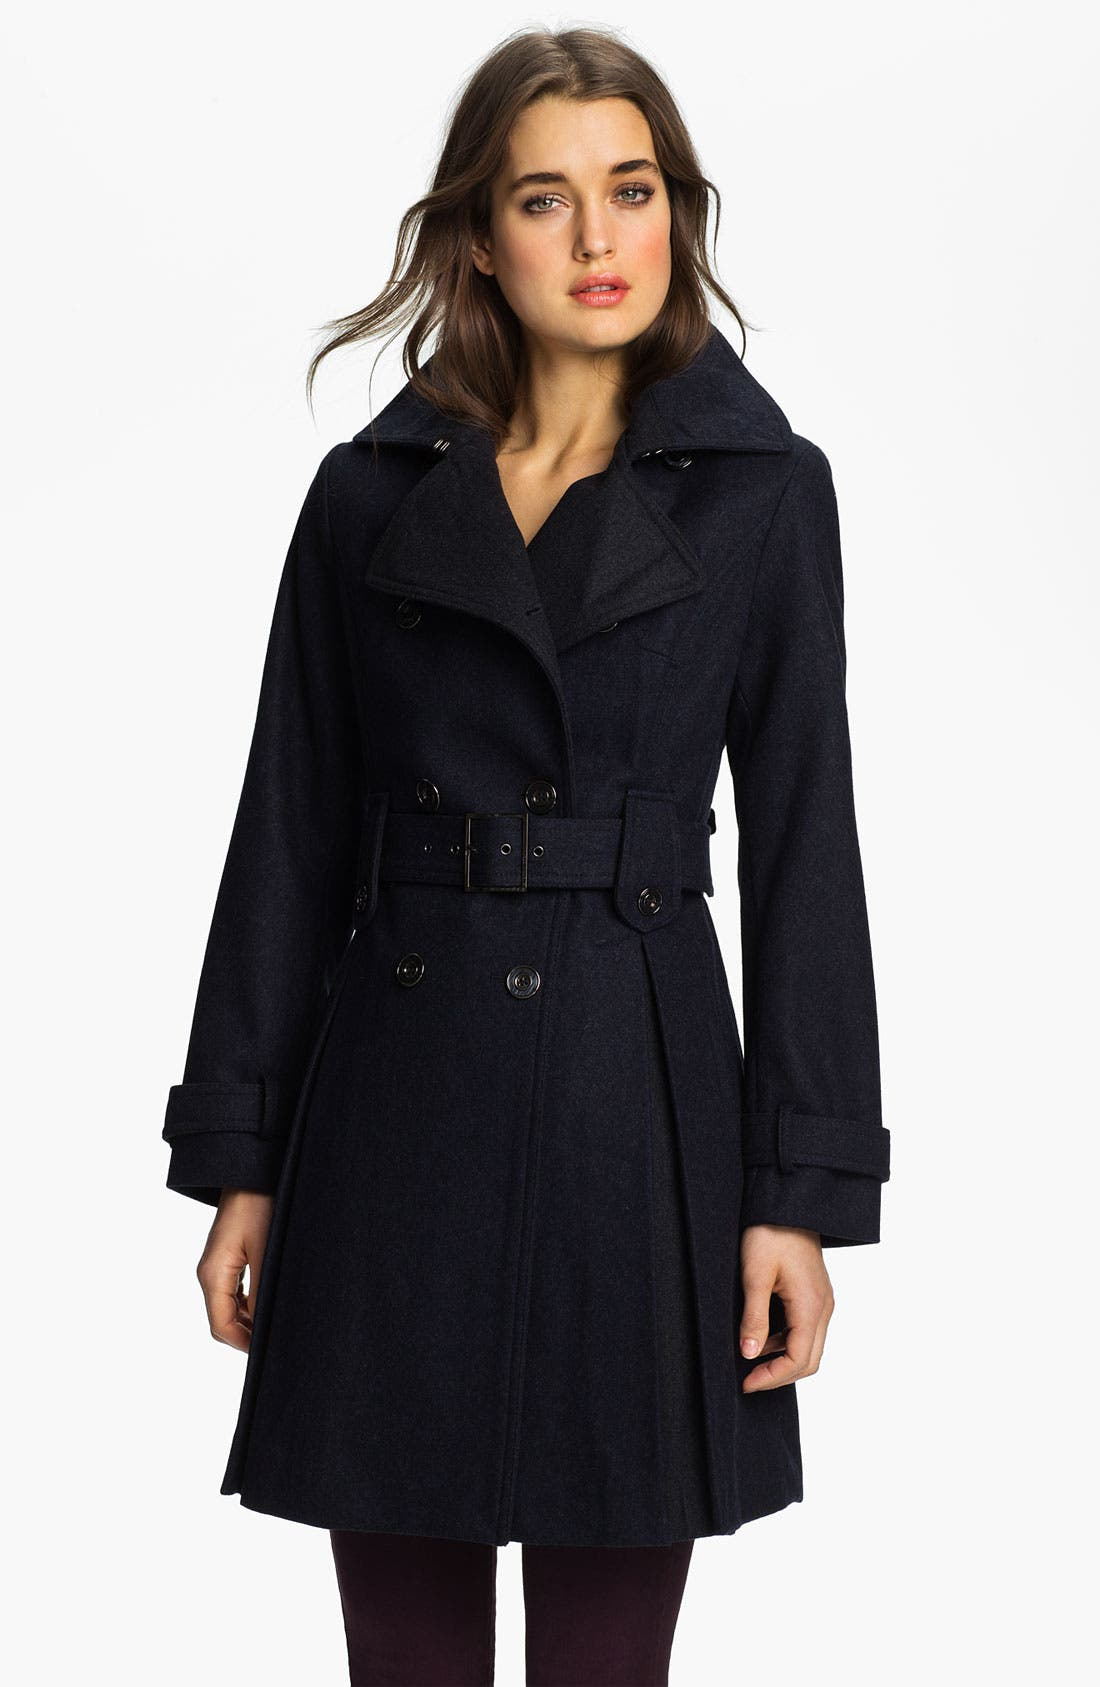 Alternate Image 1 Selected - Laundry by Shelli Segal Double Breasted Military Coat (Petite)